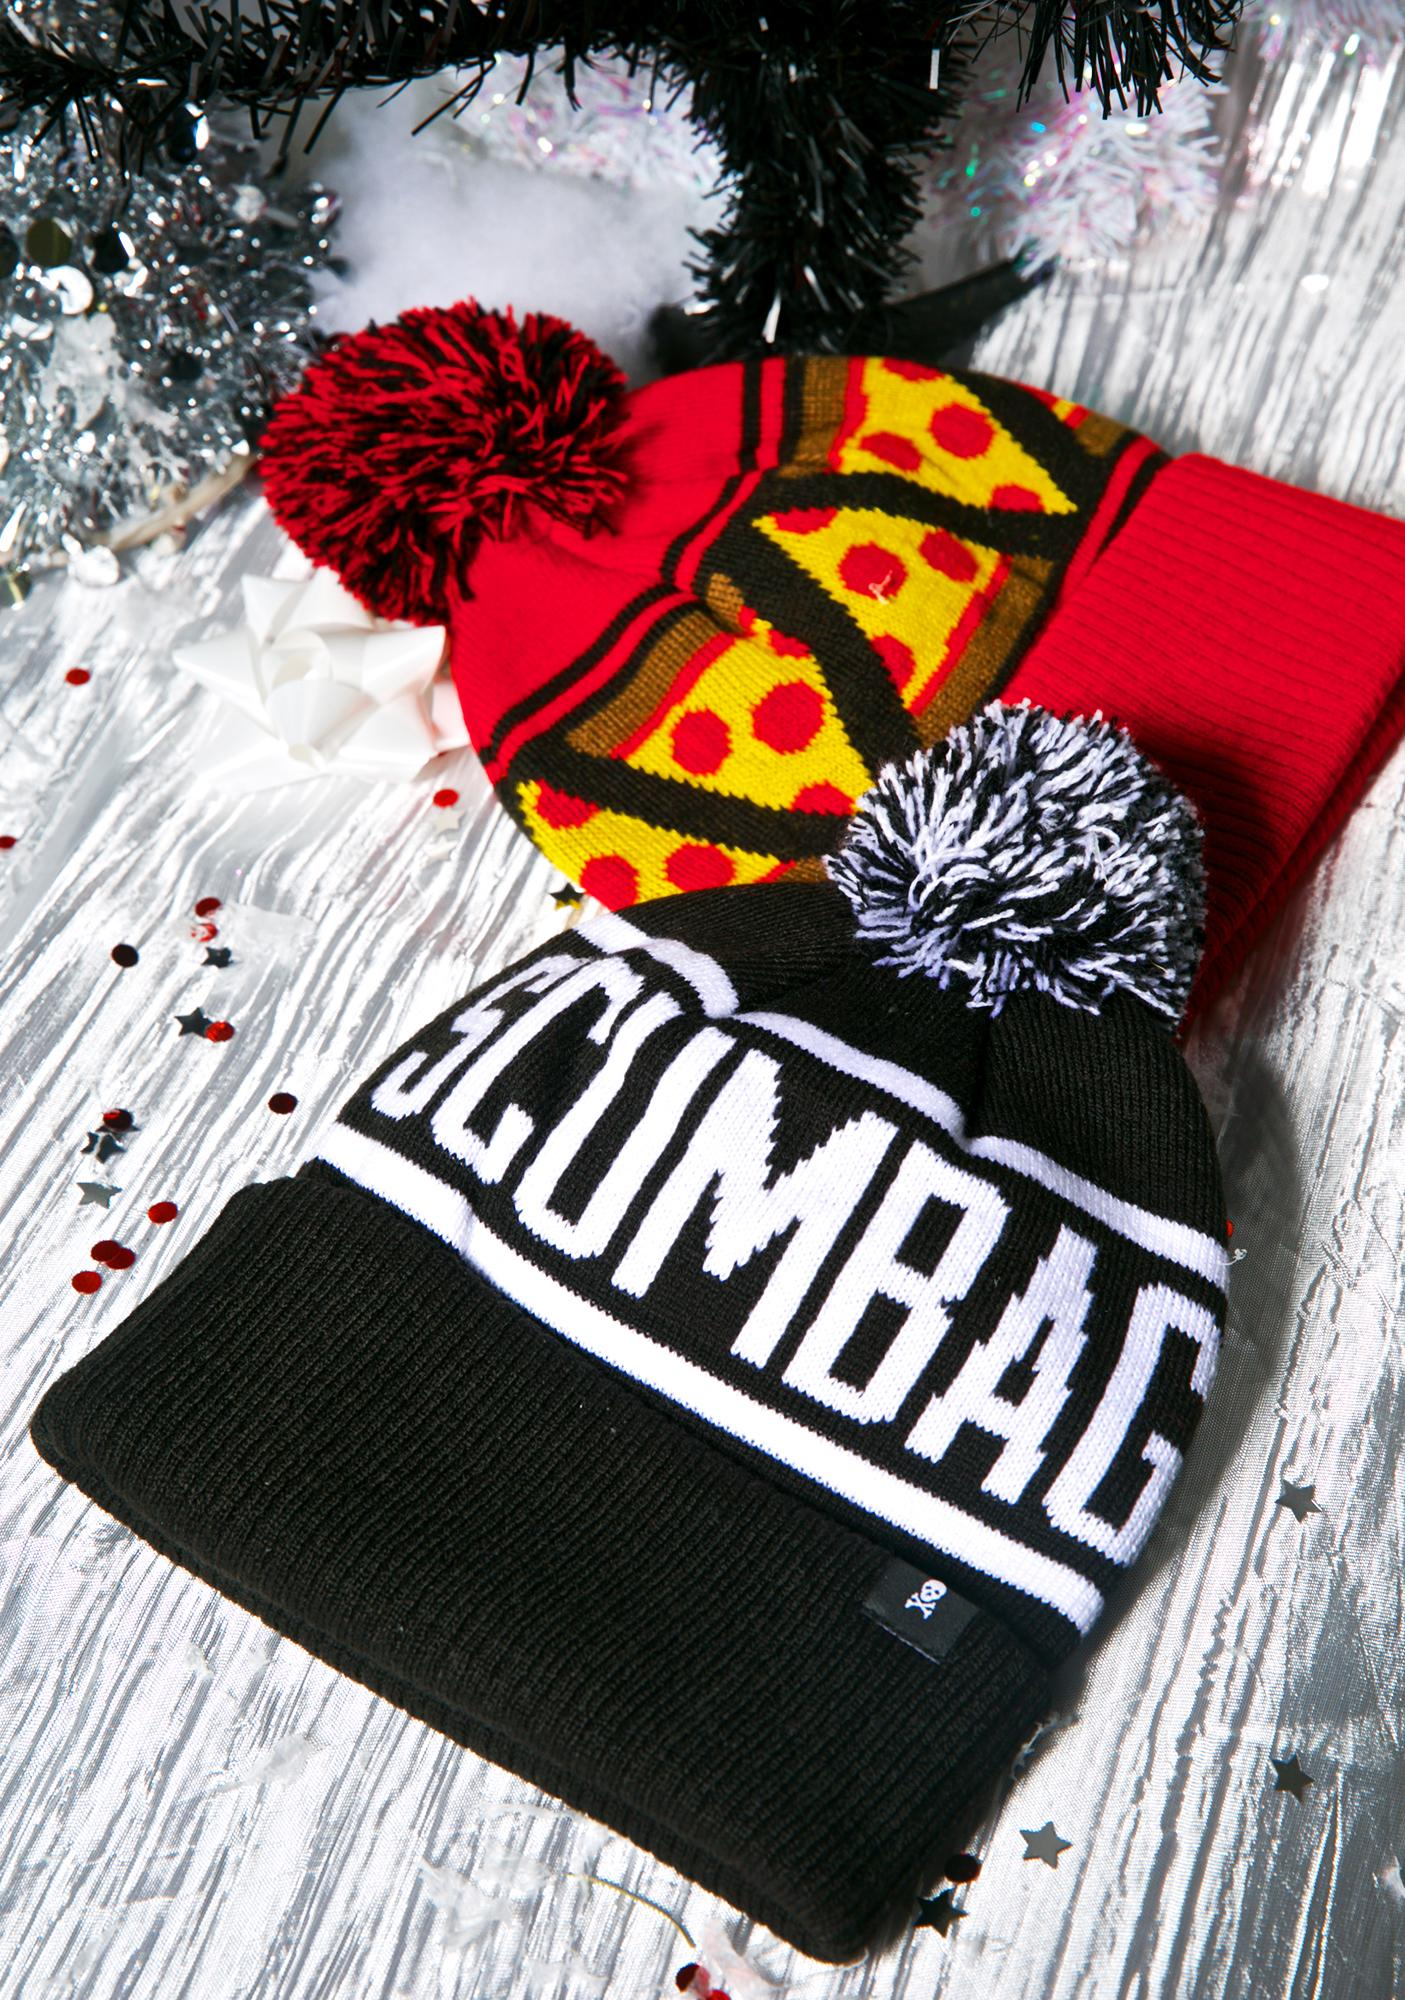 Sourpuss Clothing Scumbag Knit Beanie